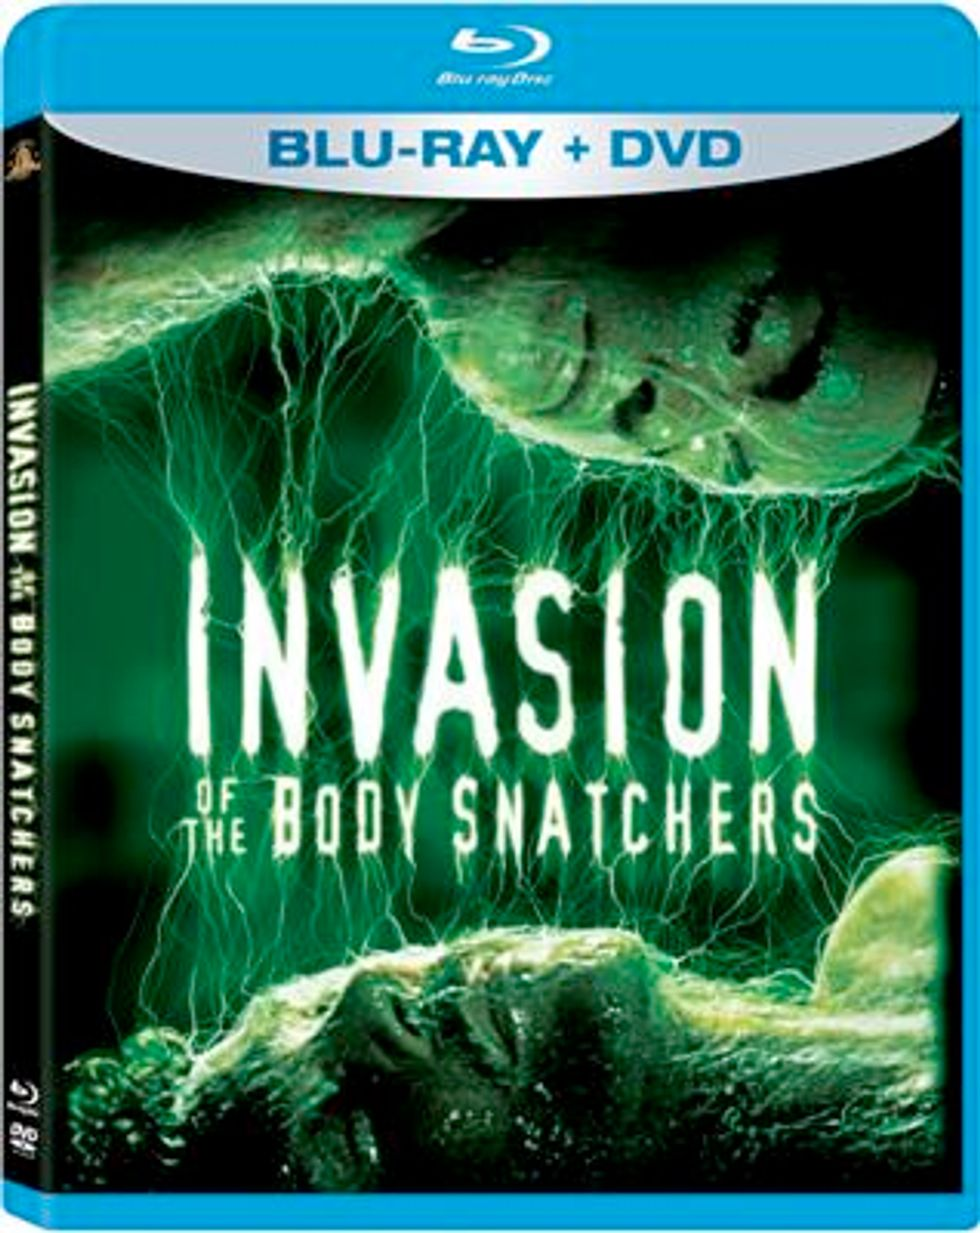 Don't Go To Sleep! Invasion Of The Body Snatchers On Blu-ray